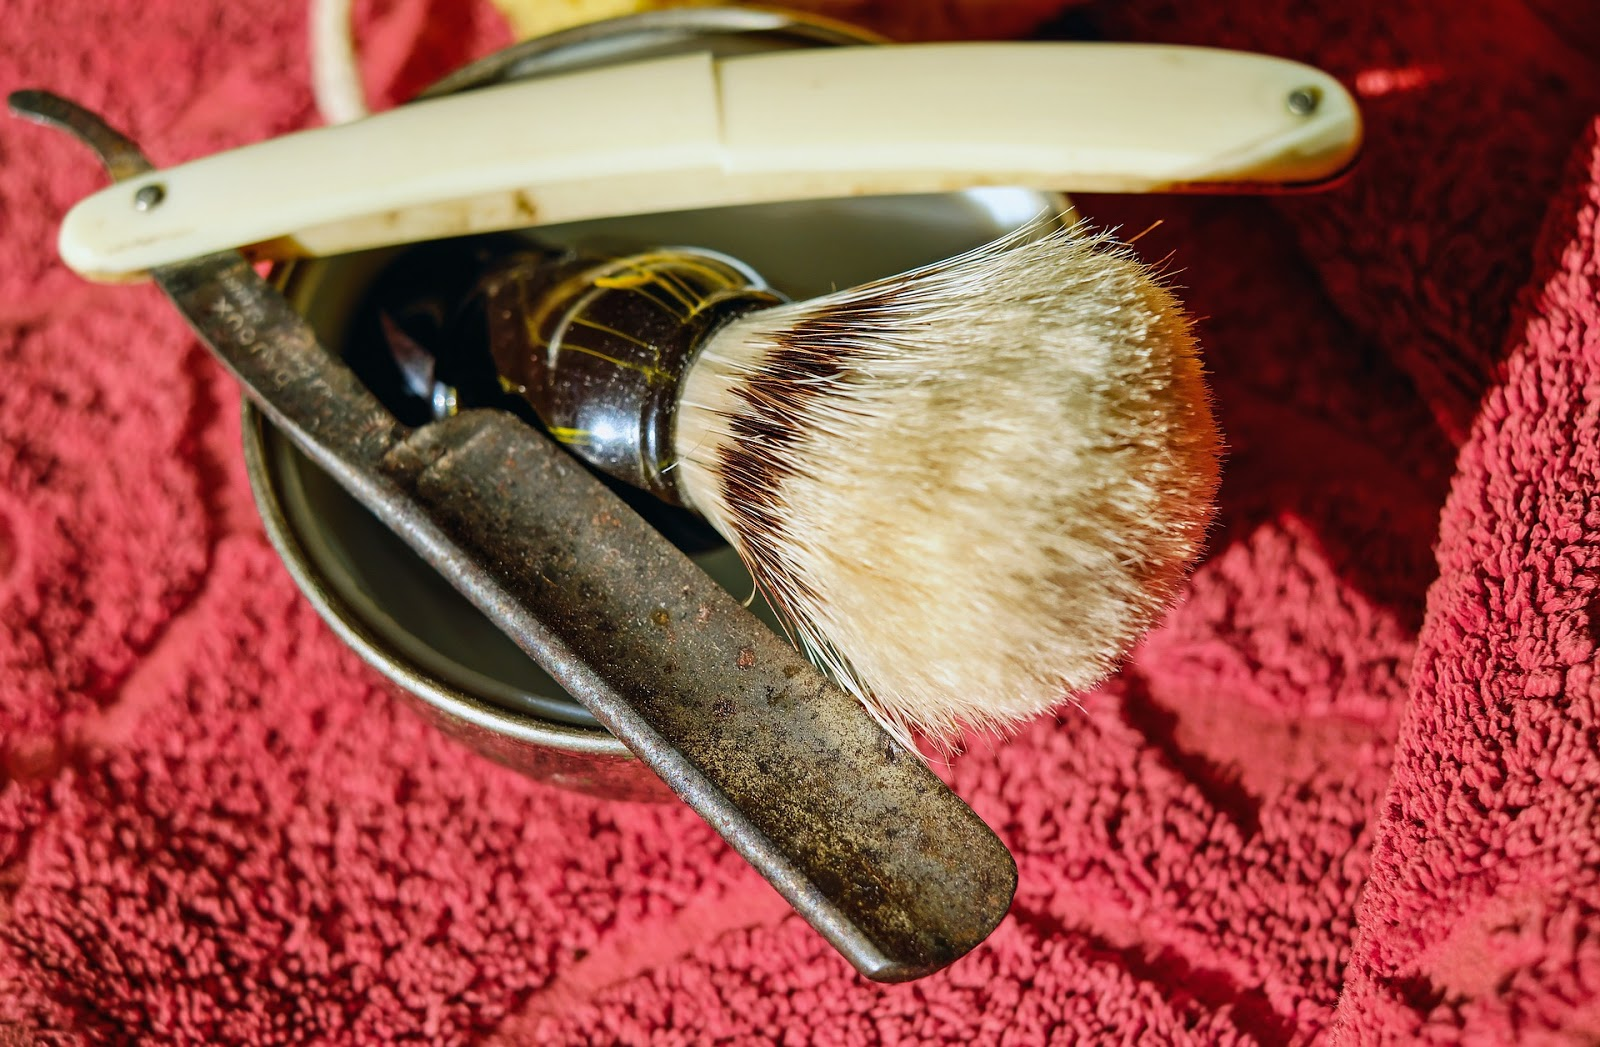 5 Benefits Of Using A Barber Brush For Shaving